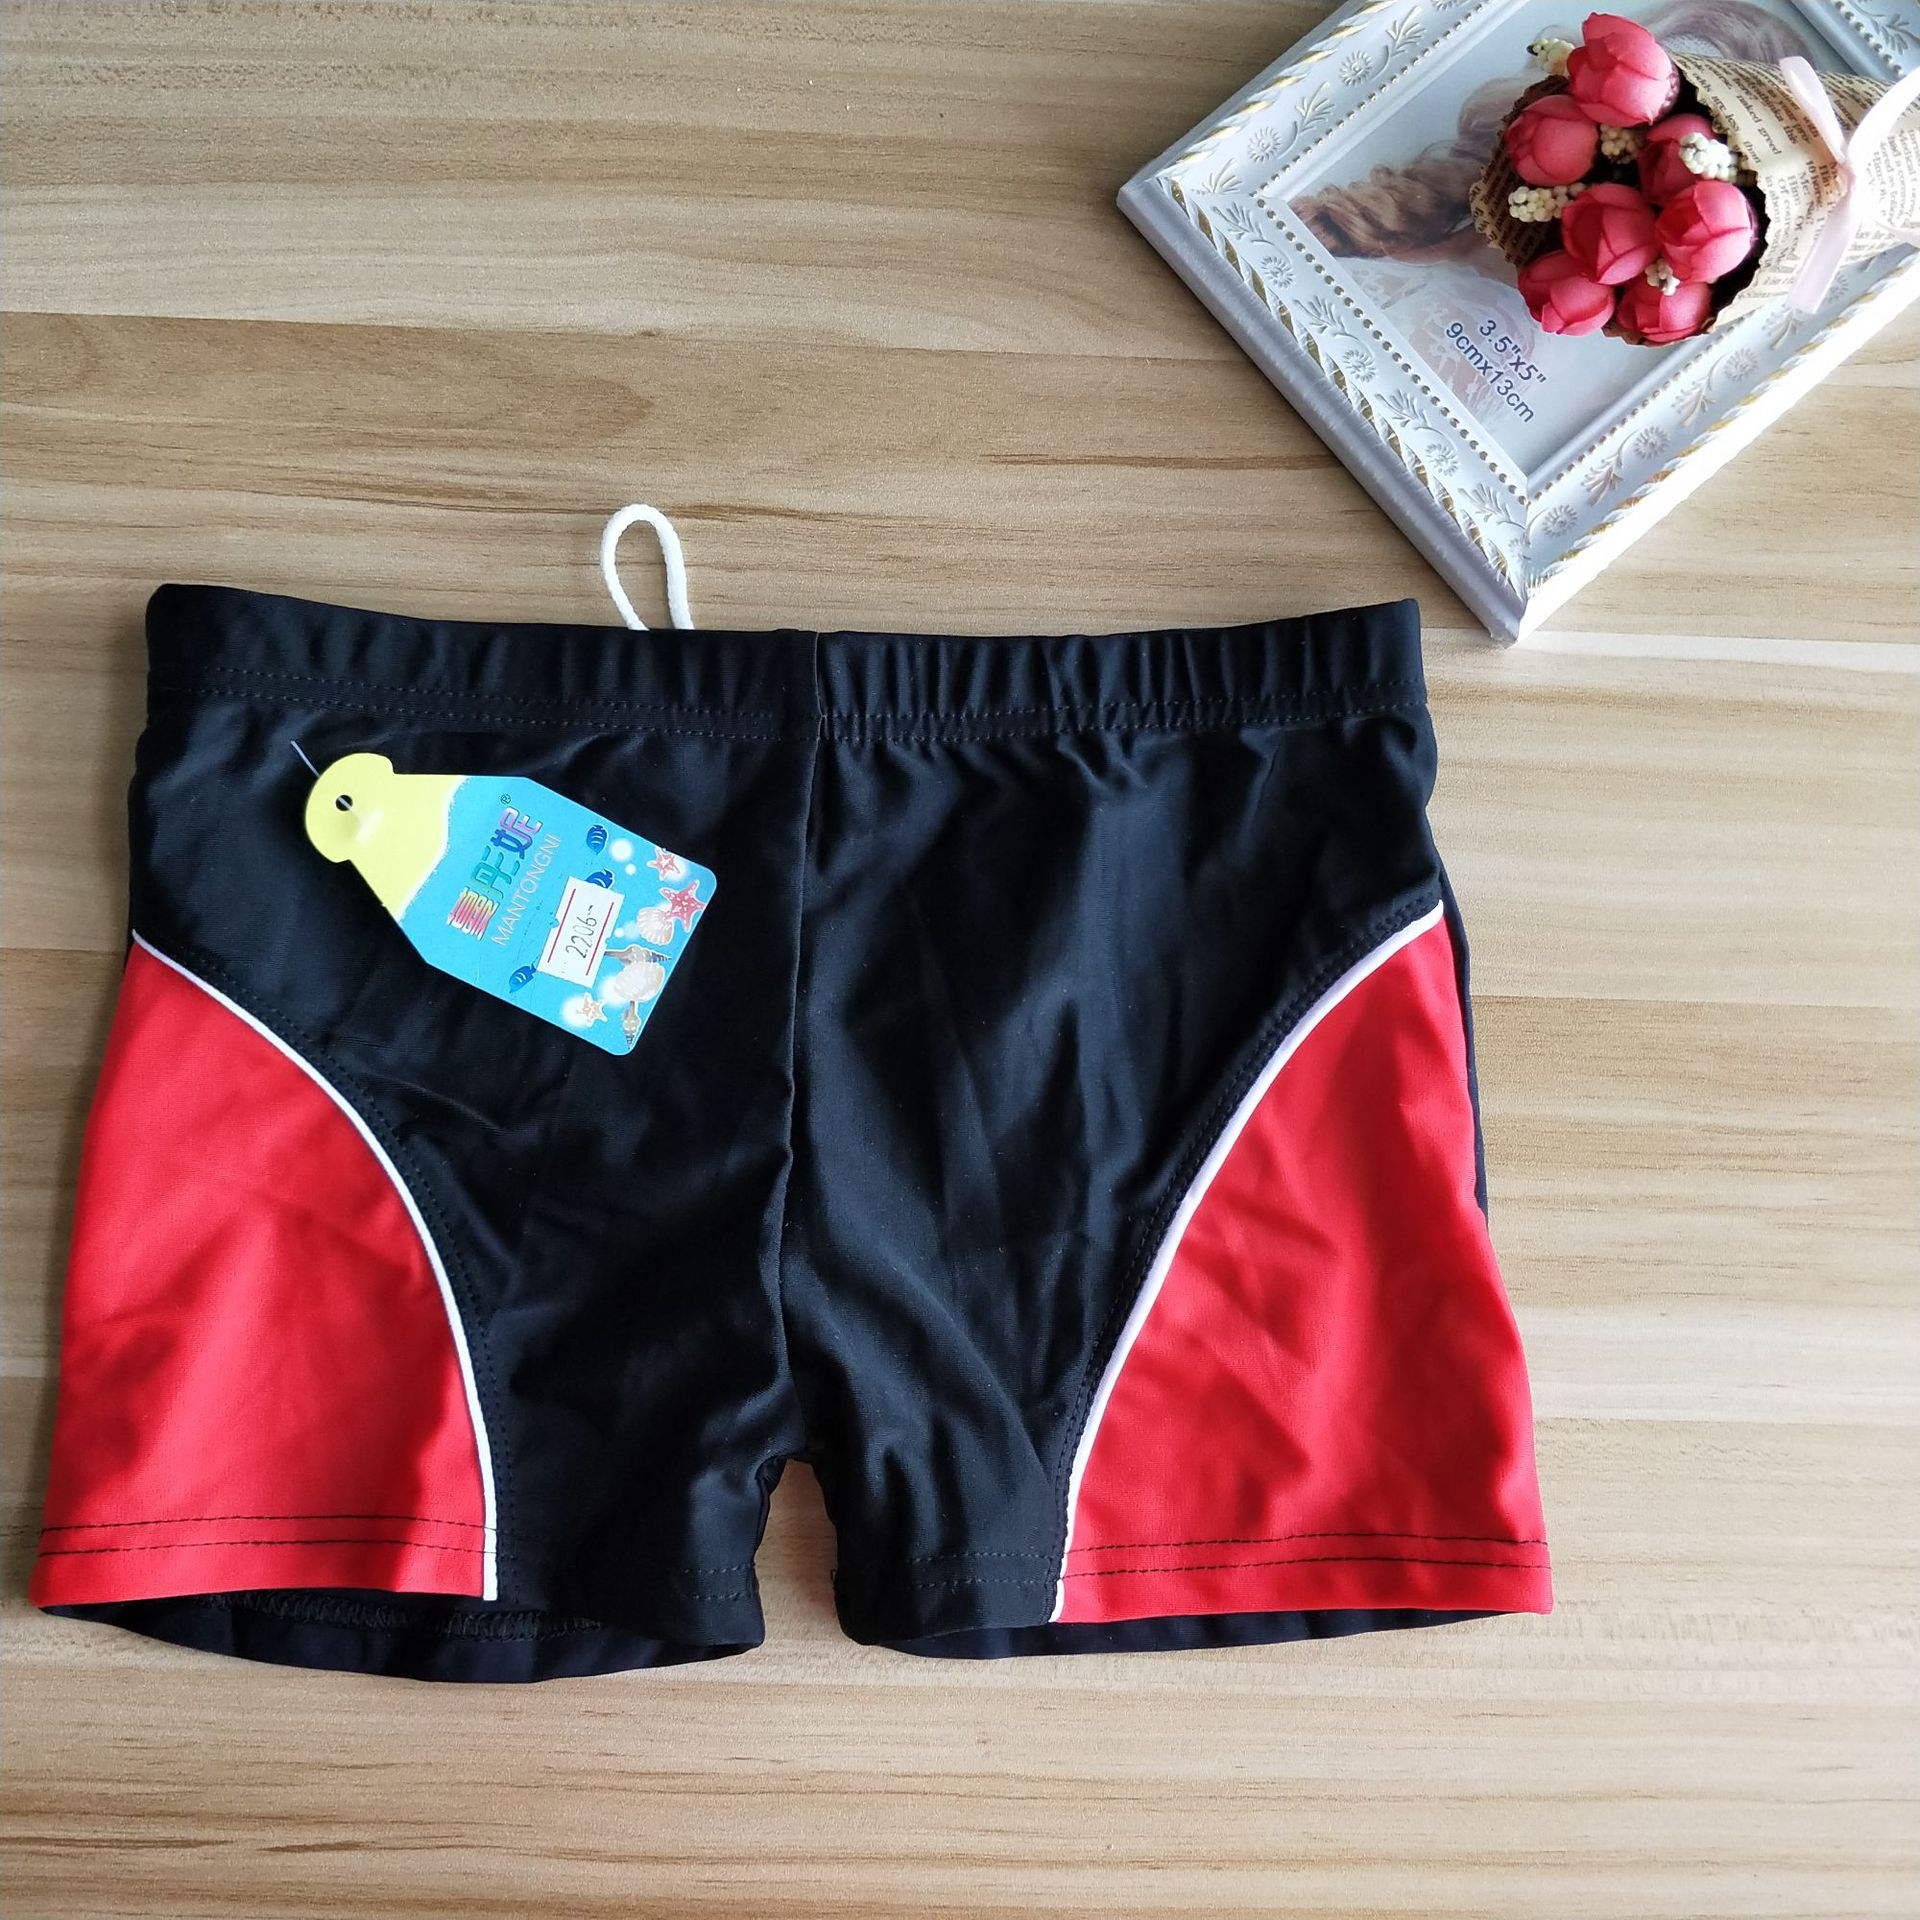 KID'S Swimwear BOY'S Swimming Trunks Big Virgin Boy Quick-Dry Boxer Swimming Trunks